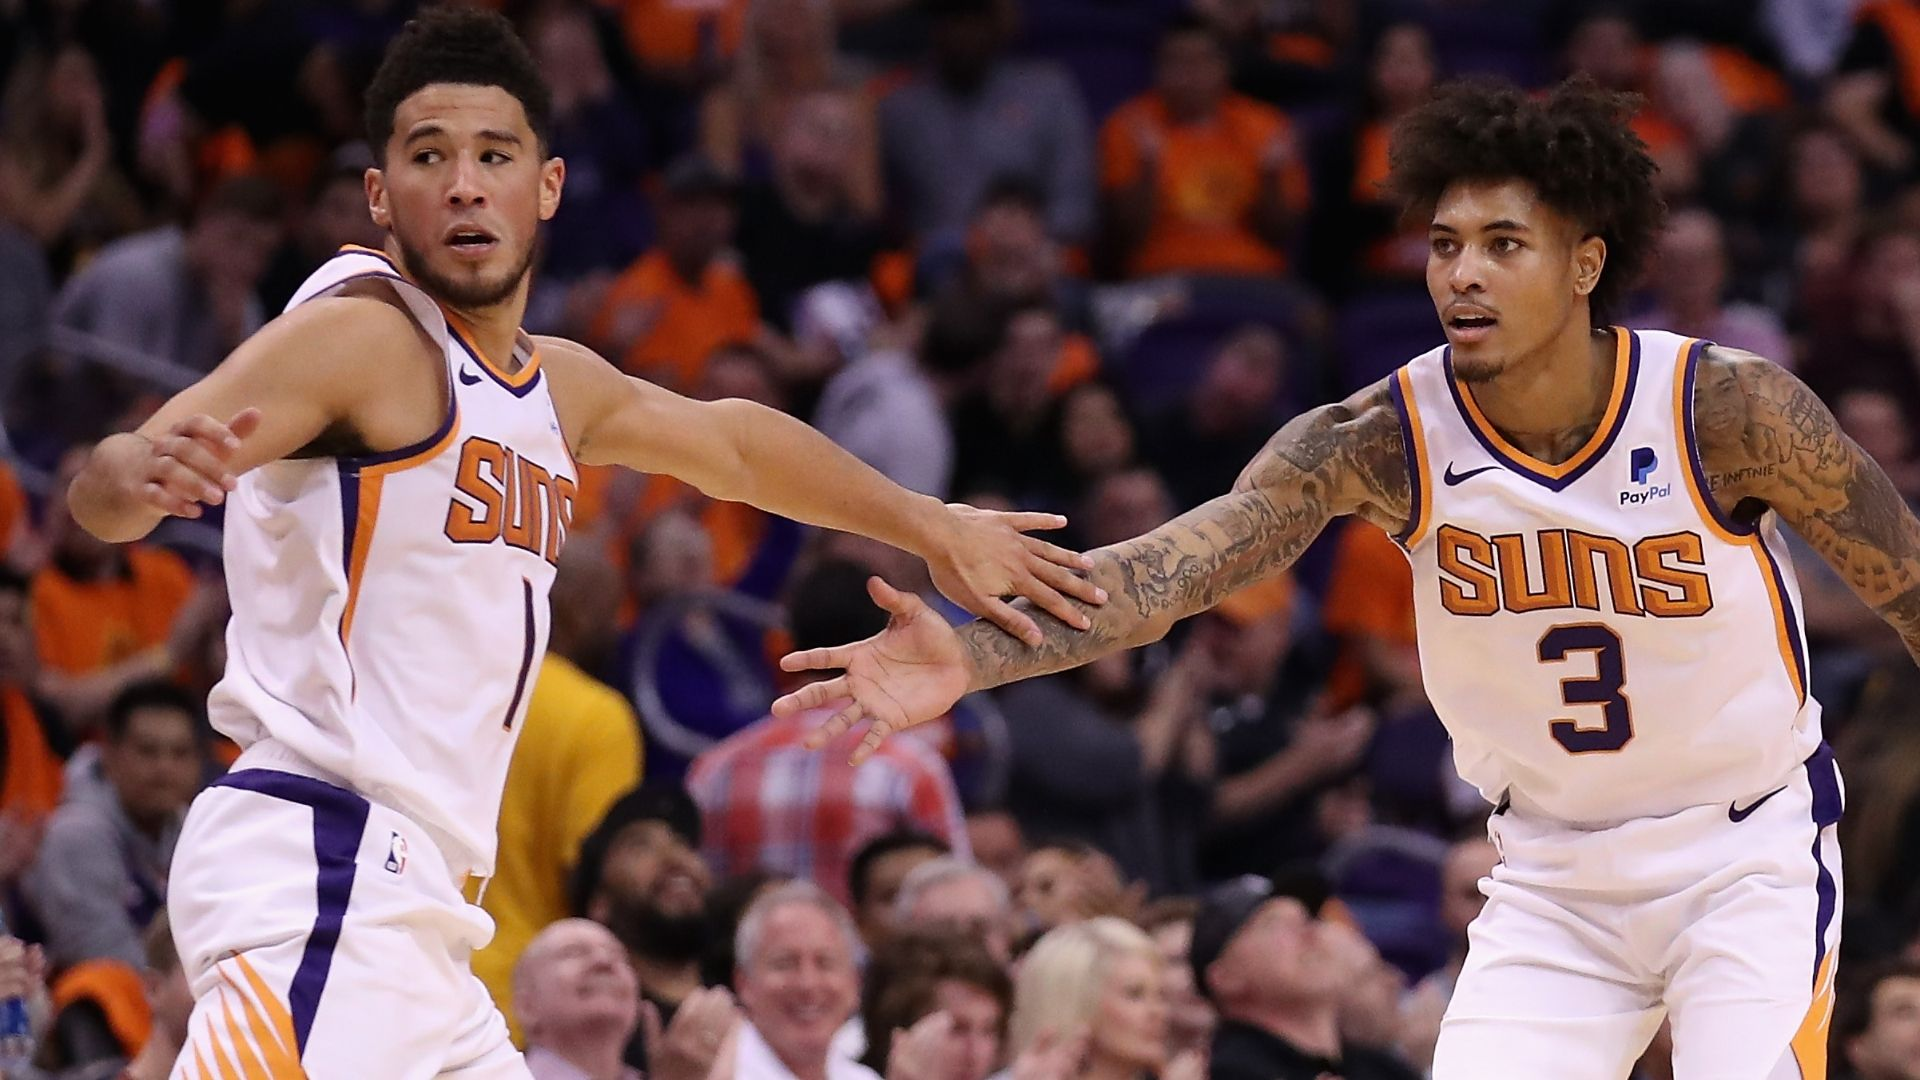 Oubre and Booker